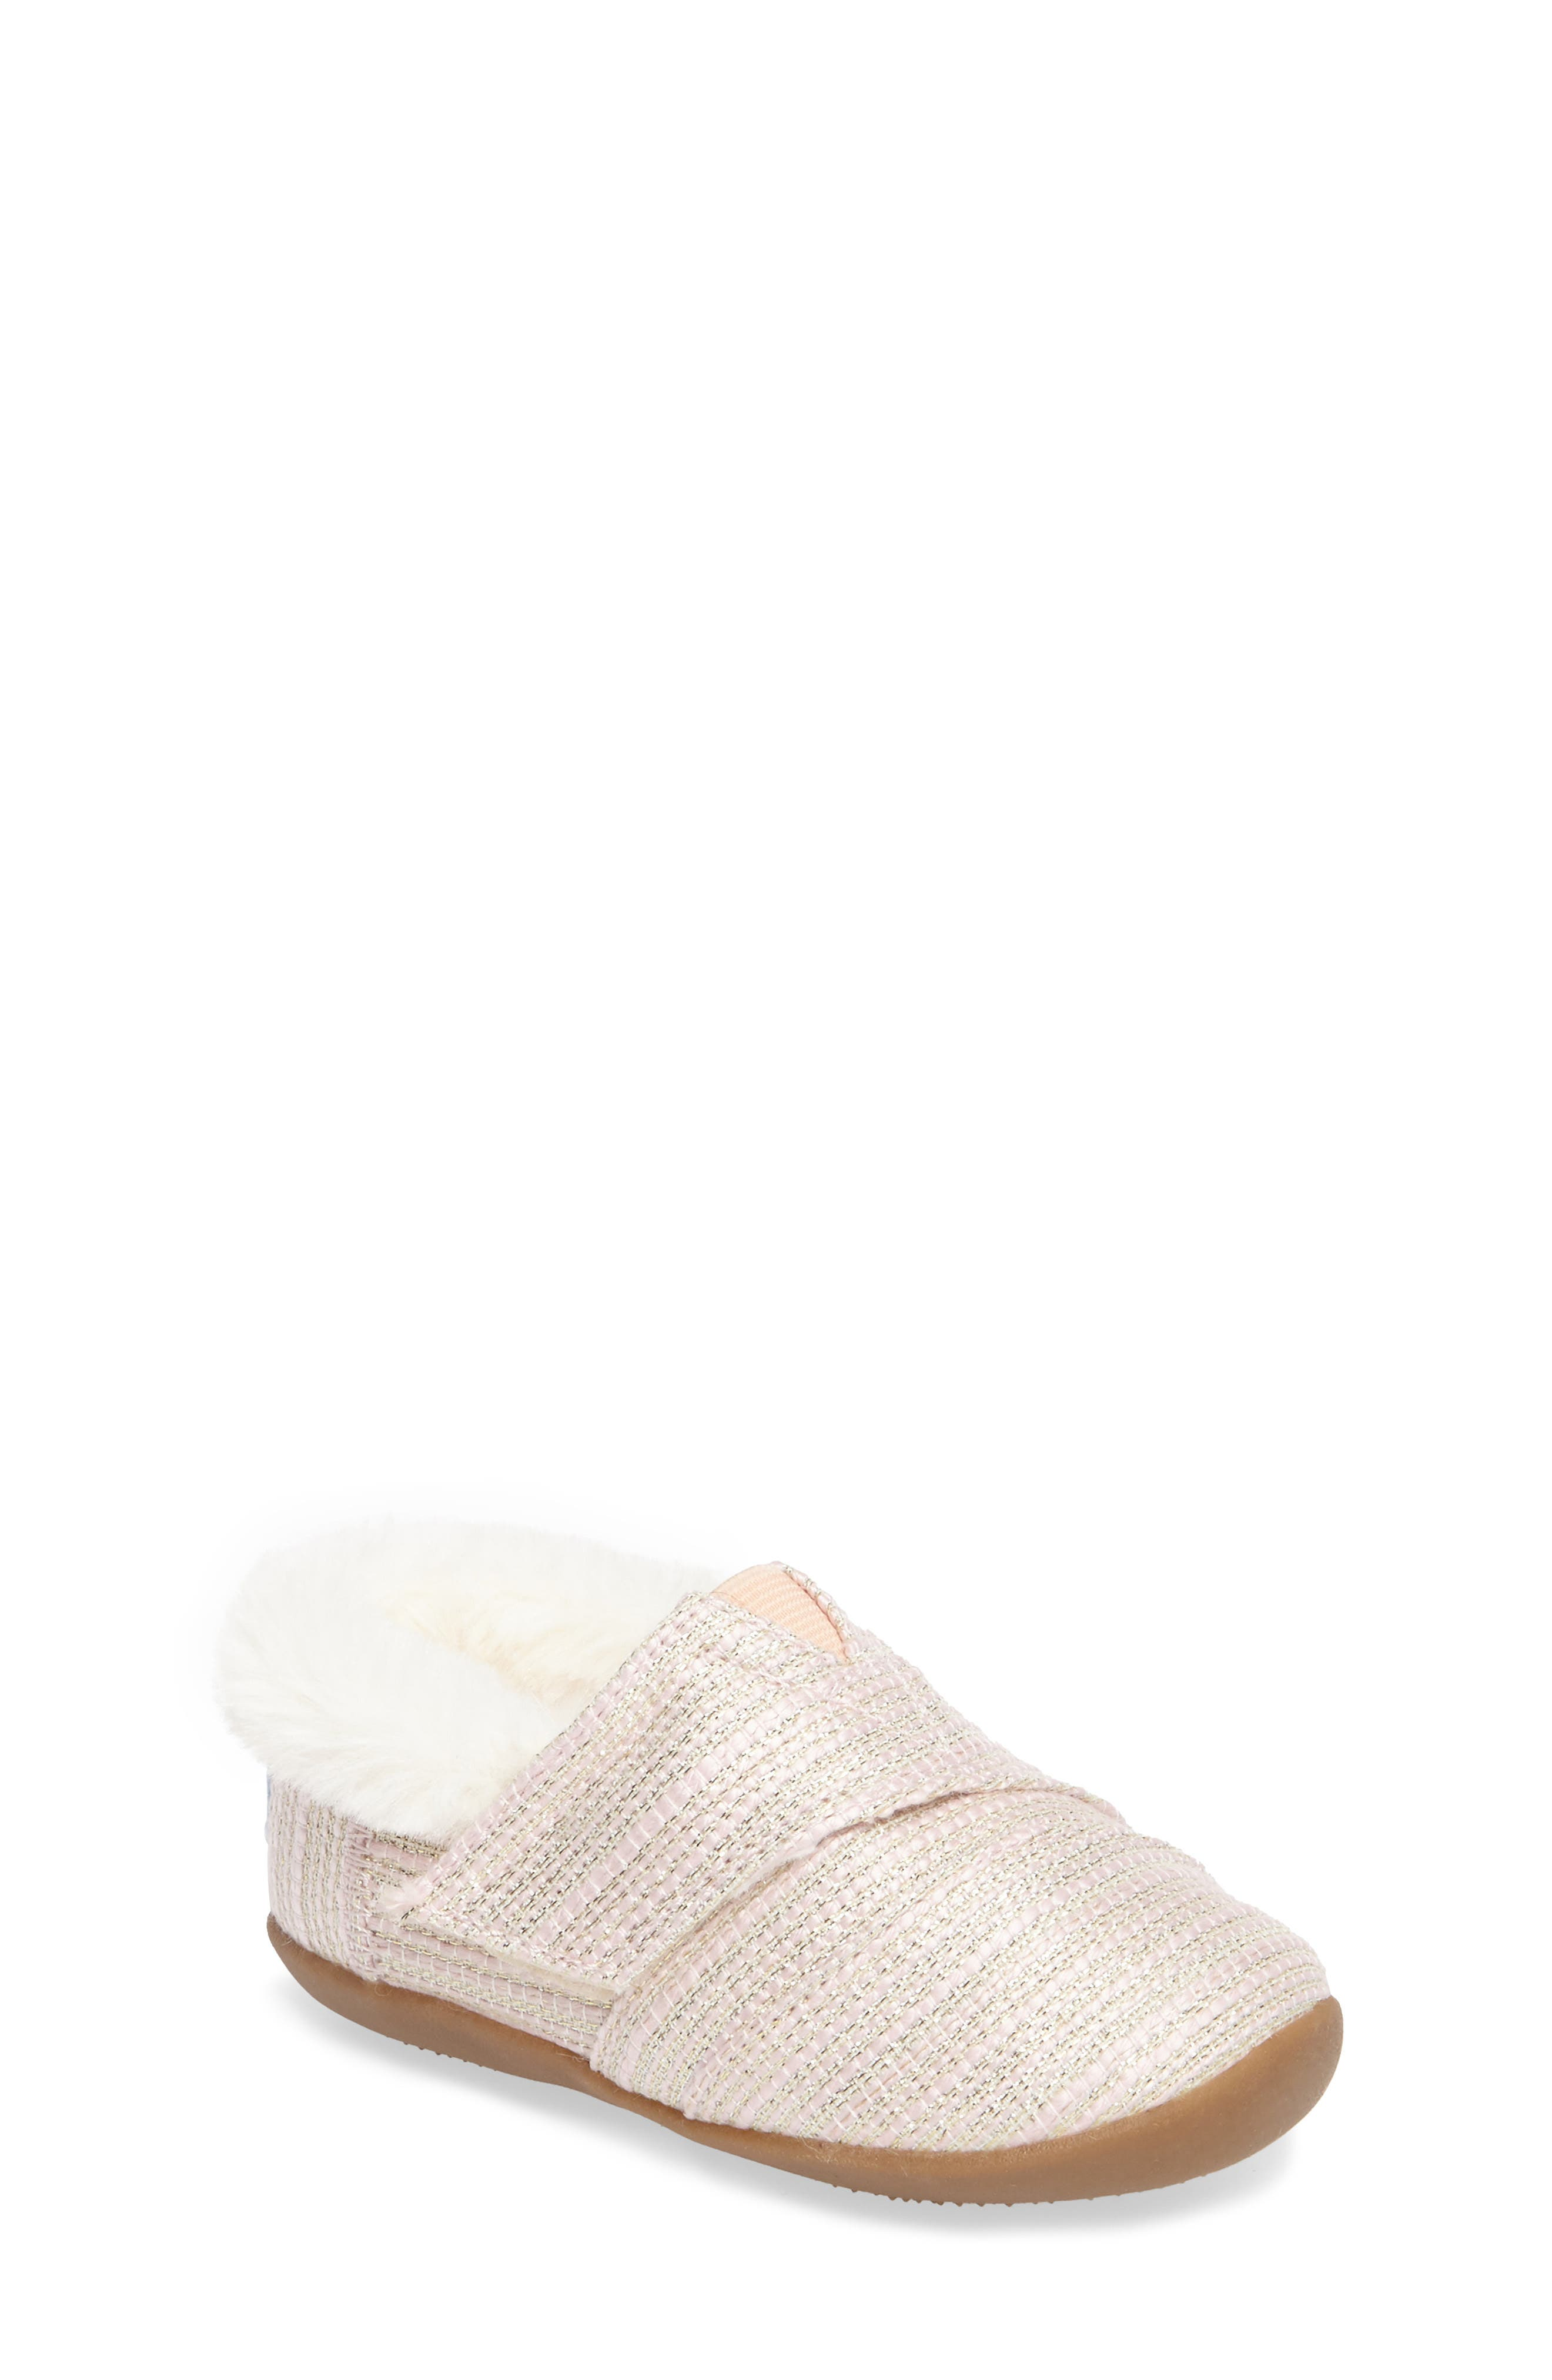 Tiny Faux Fur Metallic Slipper,                         Main,                         color, PINK METALLIC WOVEN